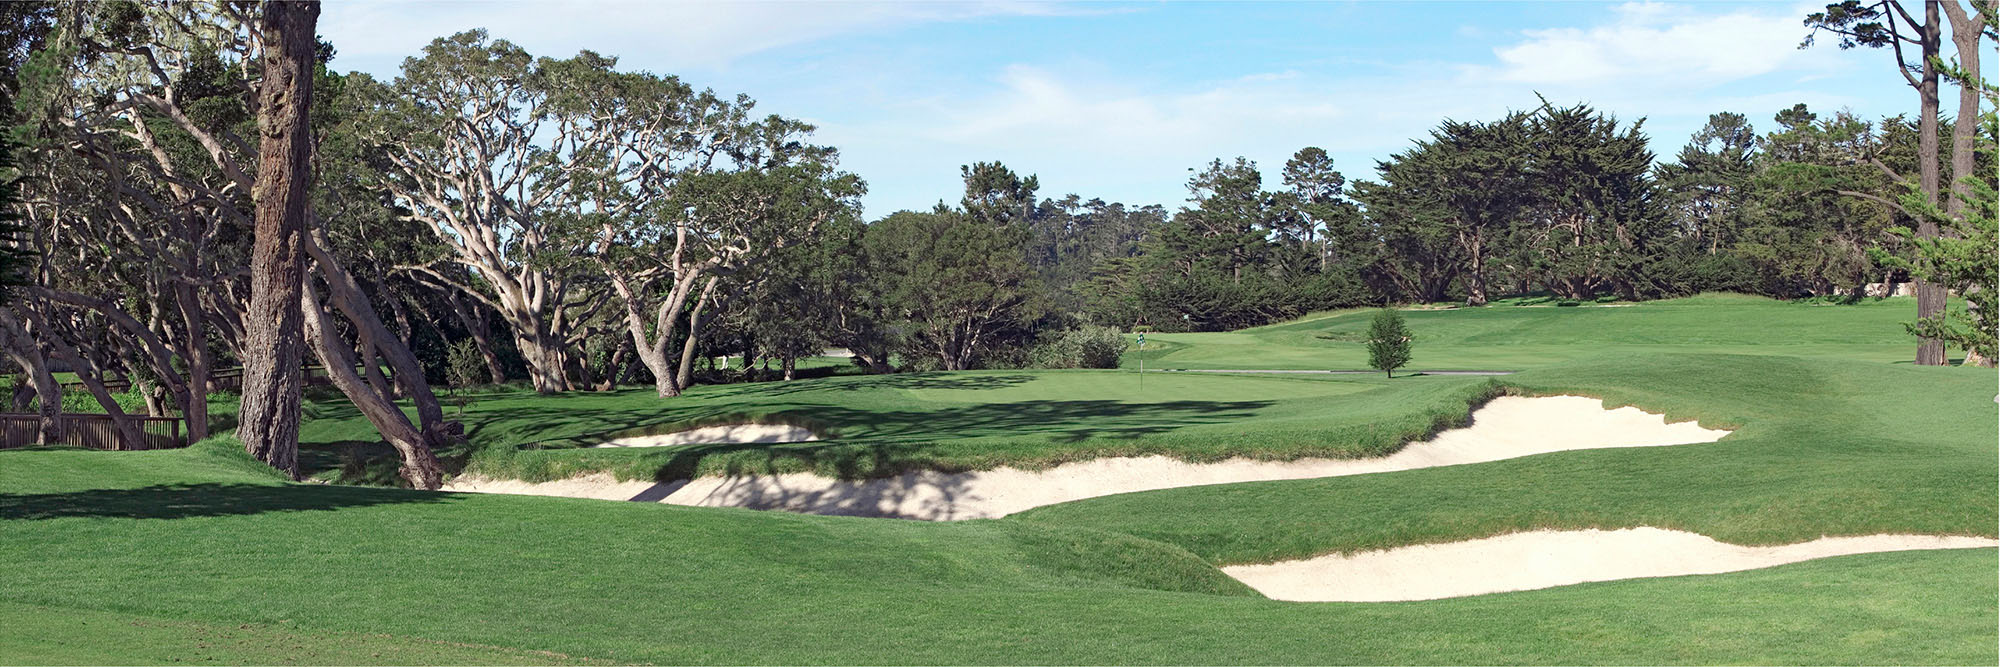 Golf Course Image - Pebble Beach No. 16